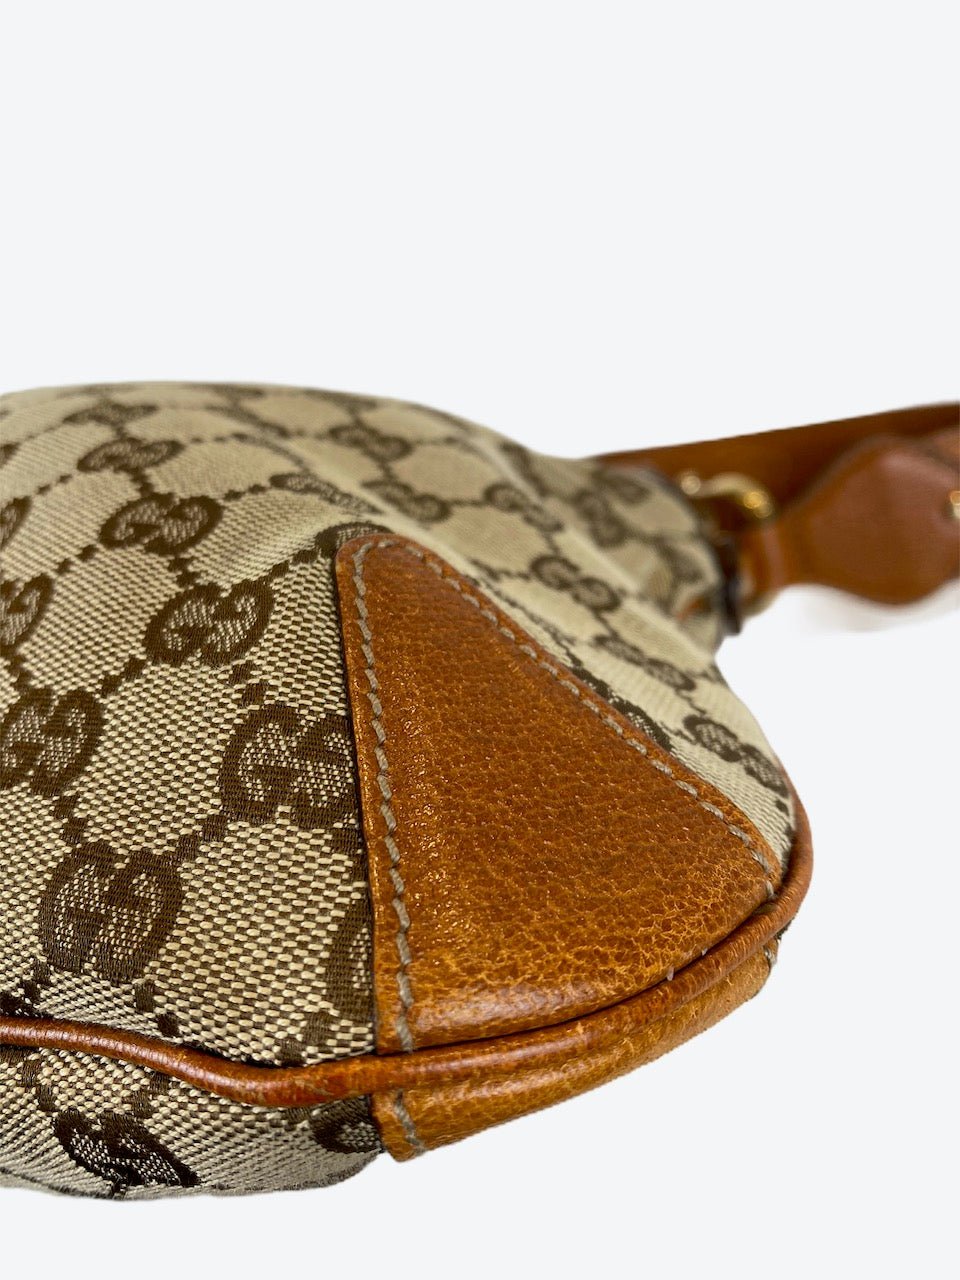 Gucci Monogram Canvas Hobo - As Seen on Instagram 2/9/20